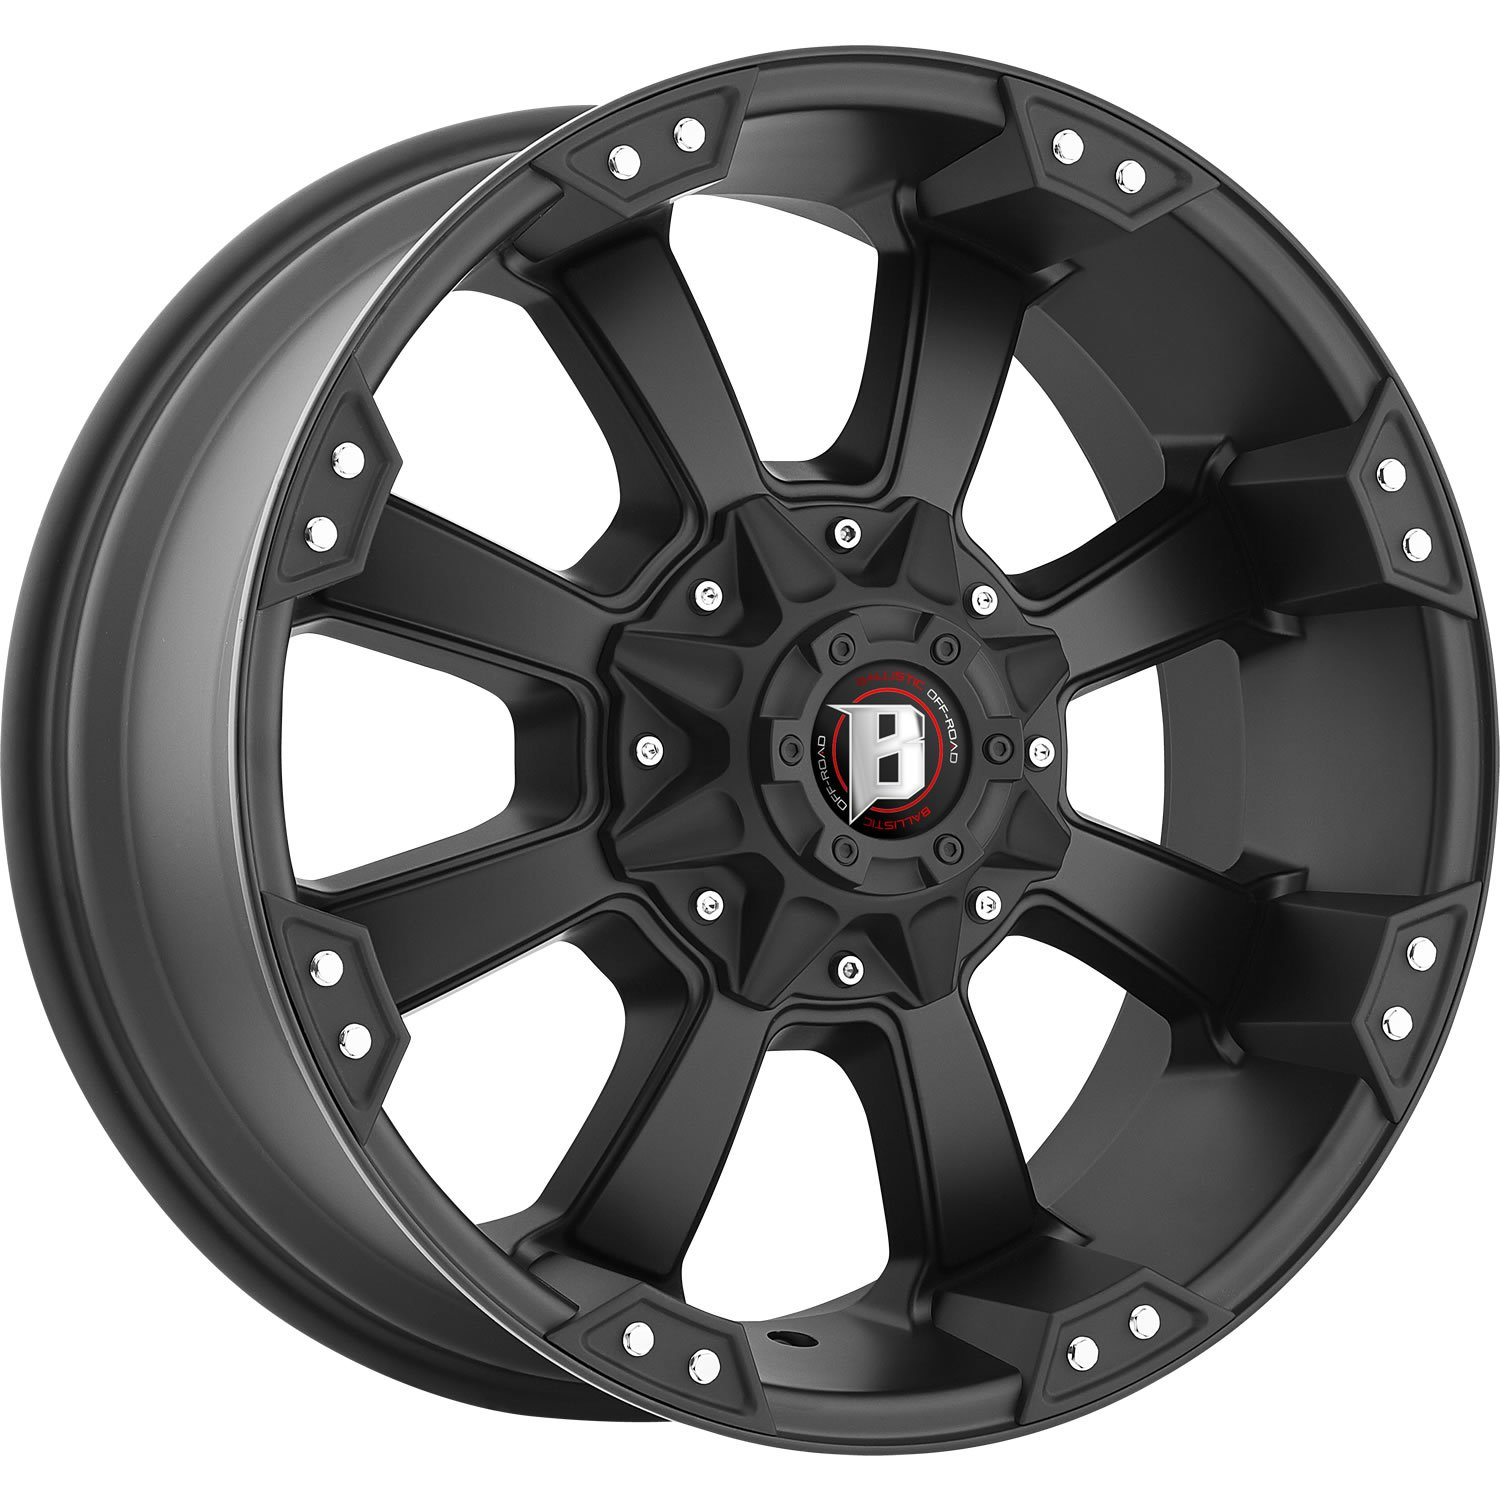 Ballistic Morax 18 Black Wheel / Rim 8x170 with a -12mm Offset and a 130.8 Hub Bore. Partnumber 845890867-12FB